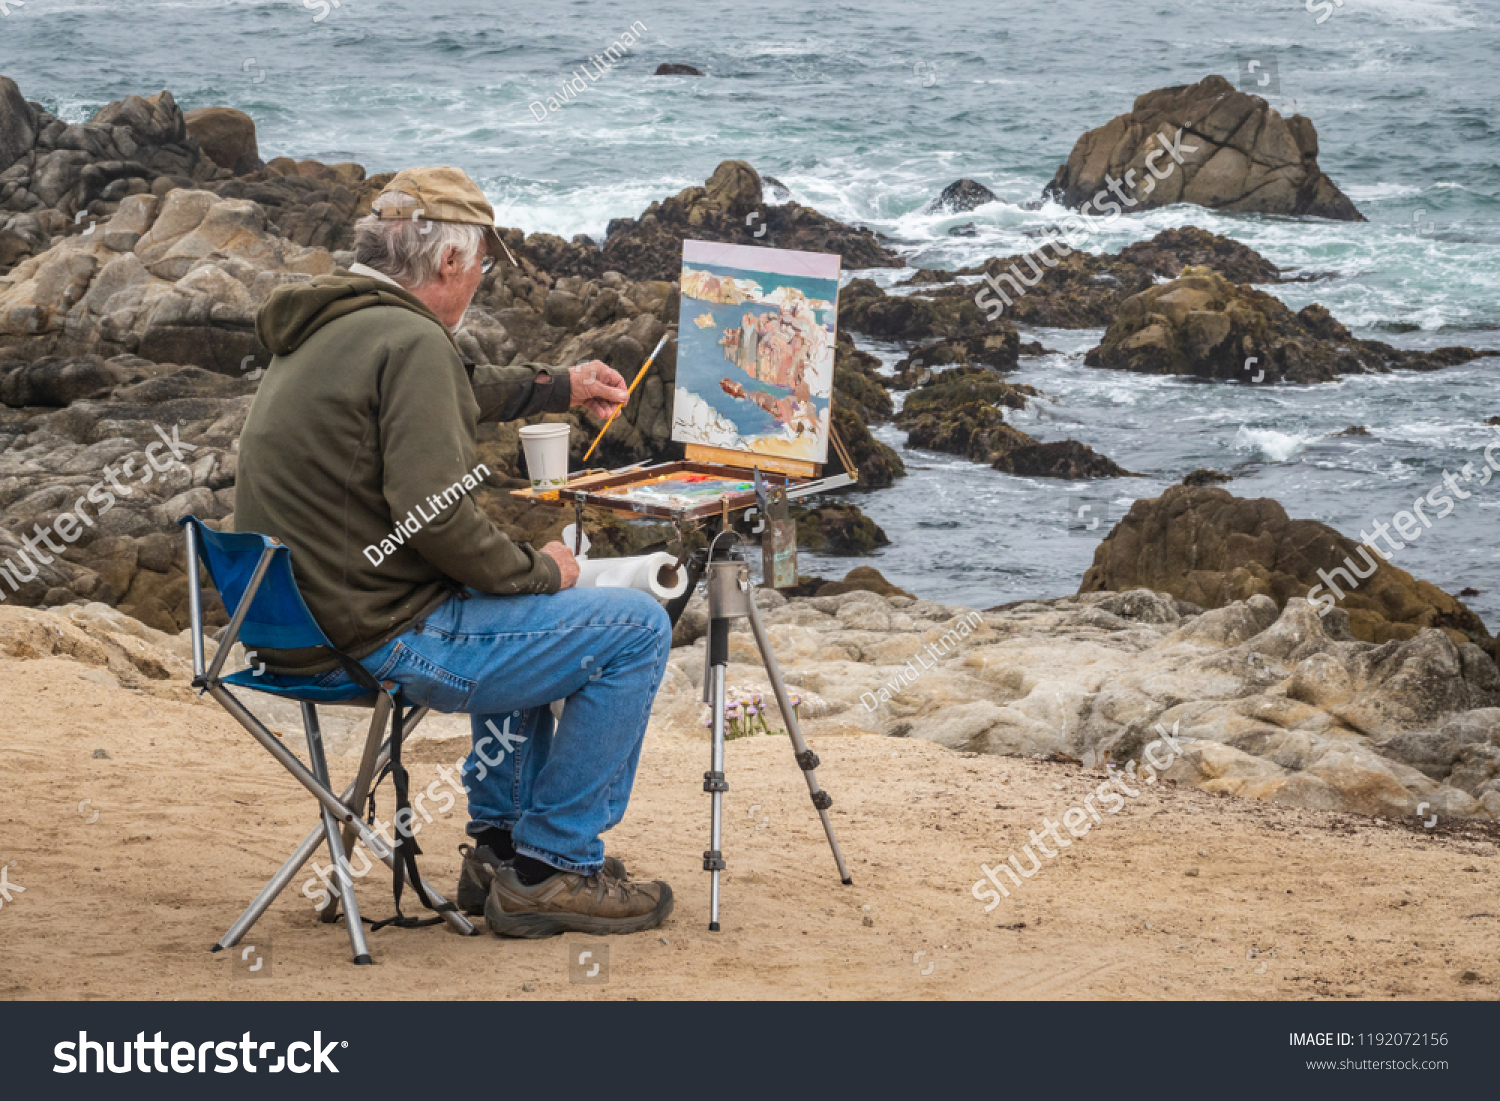 Pacific Grove, California - September 19, 2018: An artist sits along a seaside bluff at Asilomar Beach, along the Pacific Coast of central California, while painting the rocky coastline below.